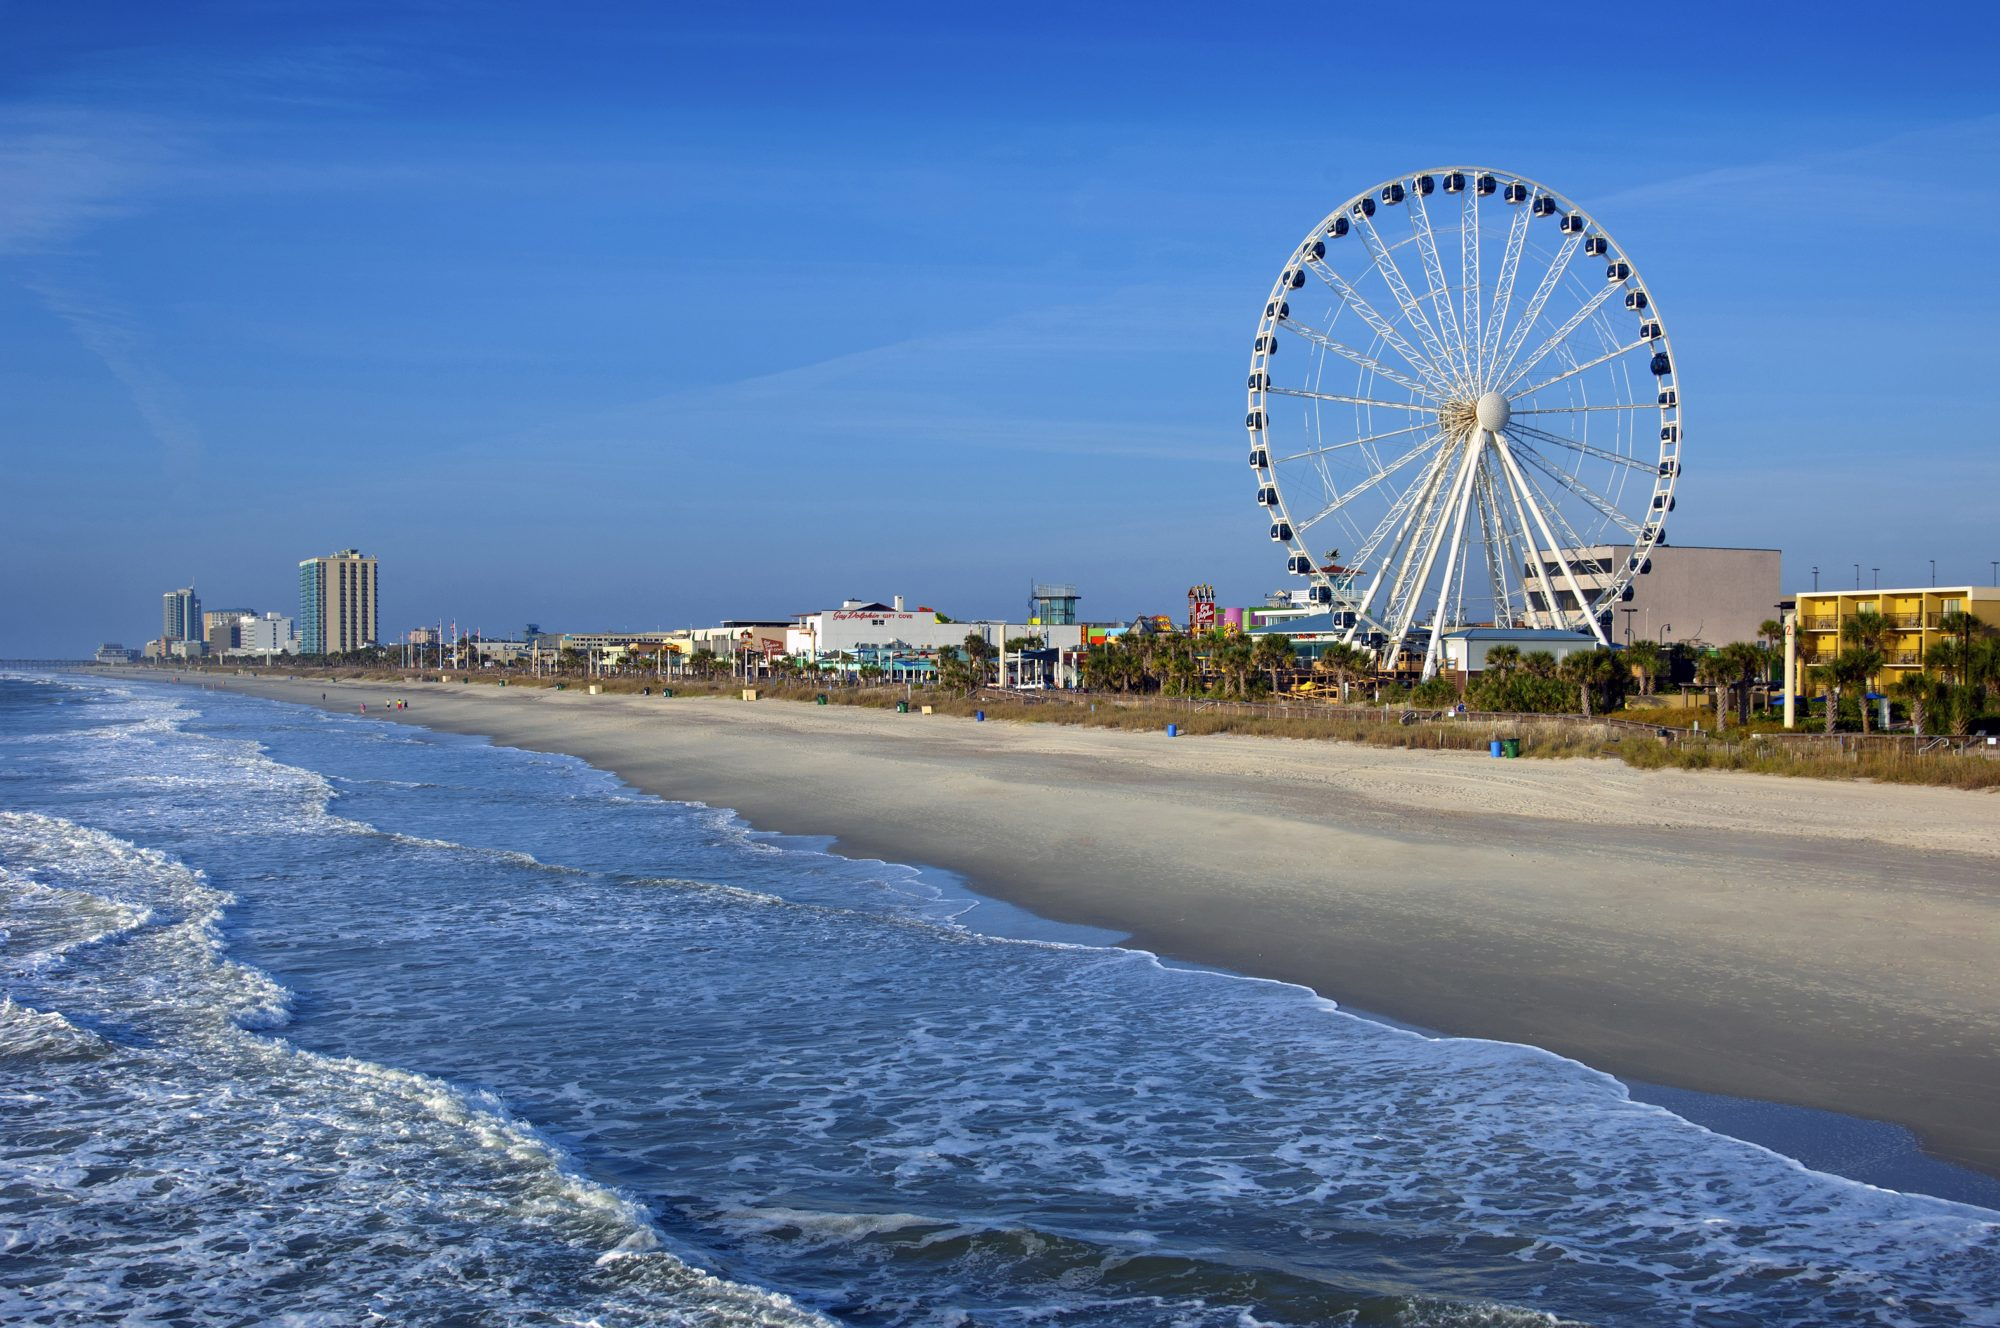 If you have $225,000…head to Myrtle BeachThe affordable neighbor to Hilton Head Island, Myrtle Beach offers many of the same benefits—including a boardwalk and 60 miles of beachfront—at a significantly lower price. (Median home price is $213,950, though you can snag a one- or two-bedroom condo for $100k.) If affordability is paramount, Vacasa suggests looking in North Myrtle Beach, where you'll find lower price tags attached to waterfront homes with easy access to golf courses and the ocean.